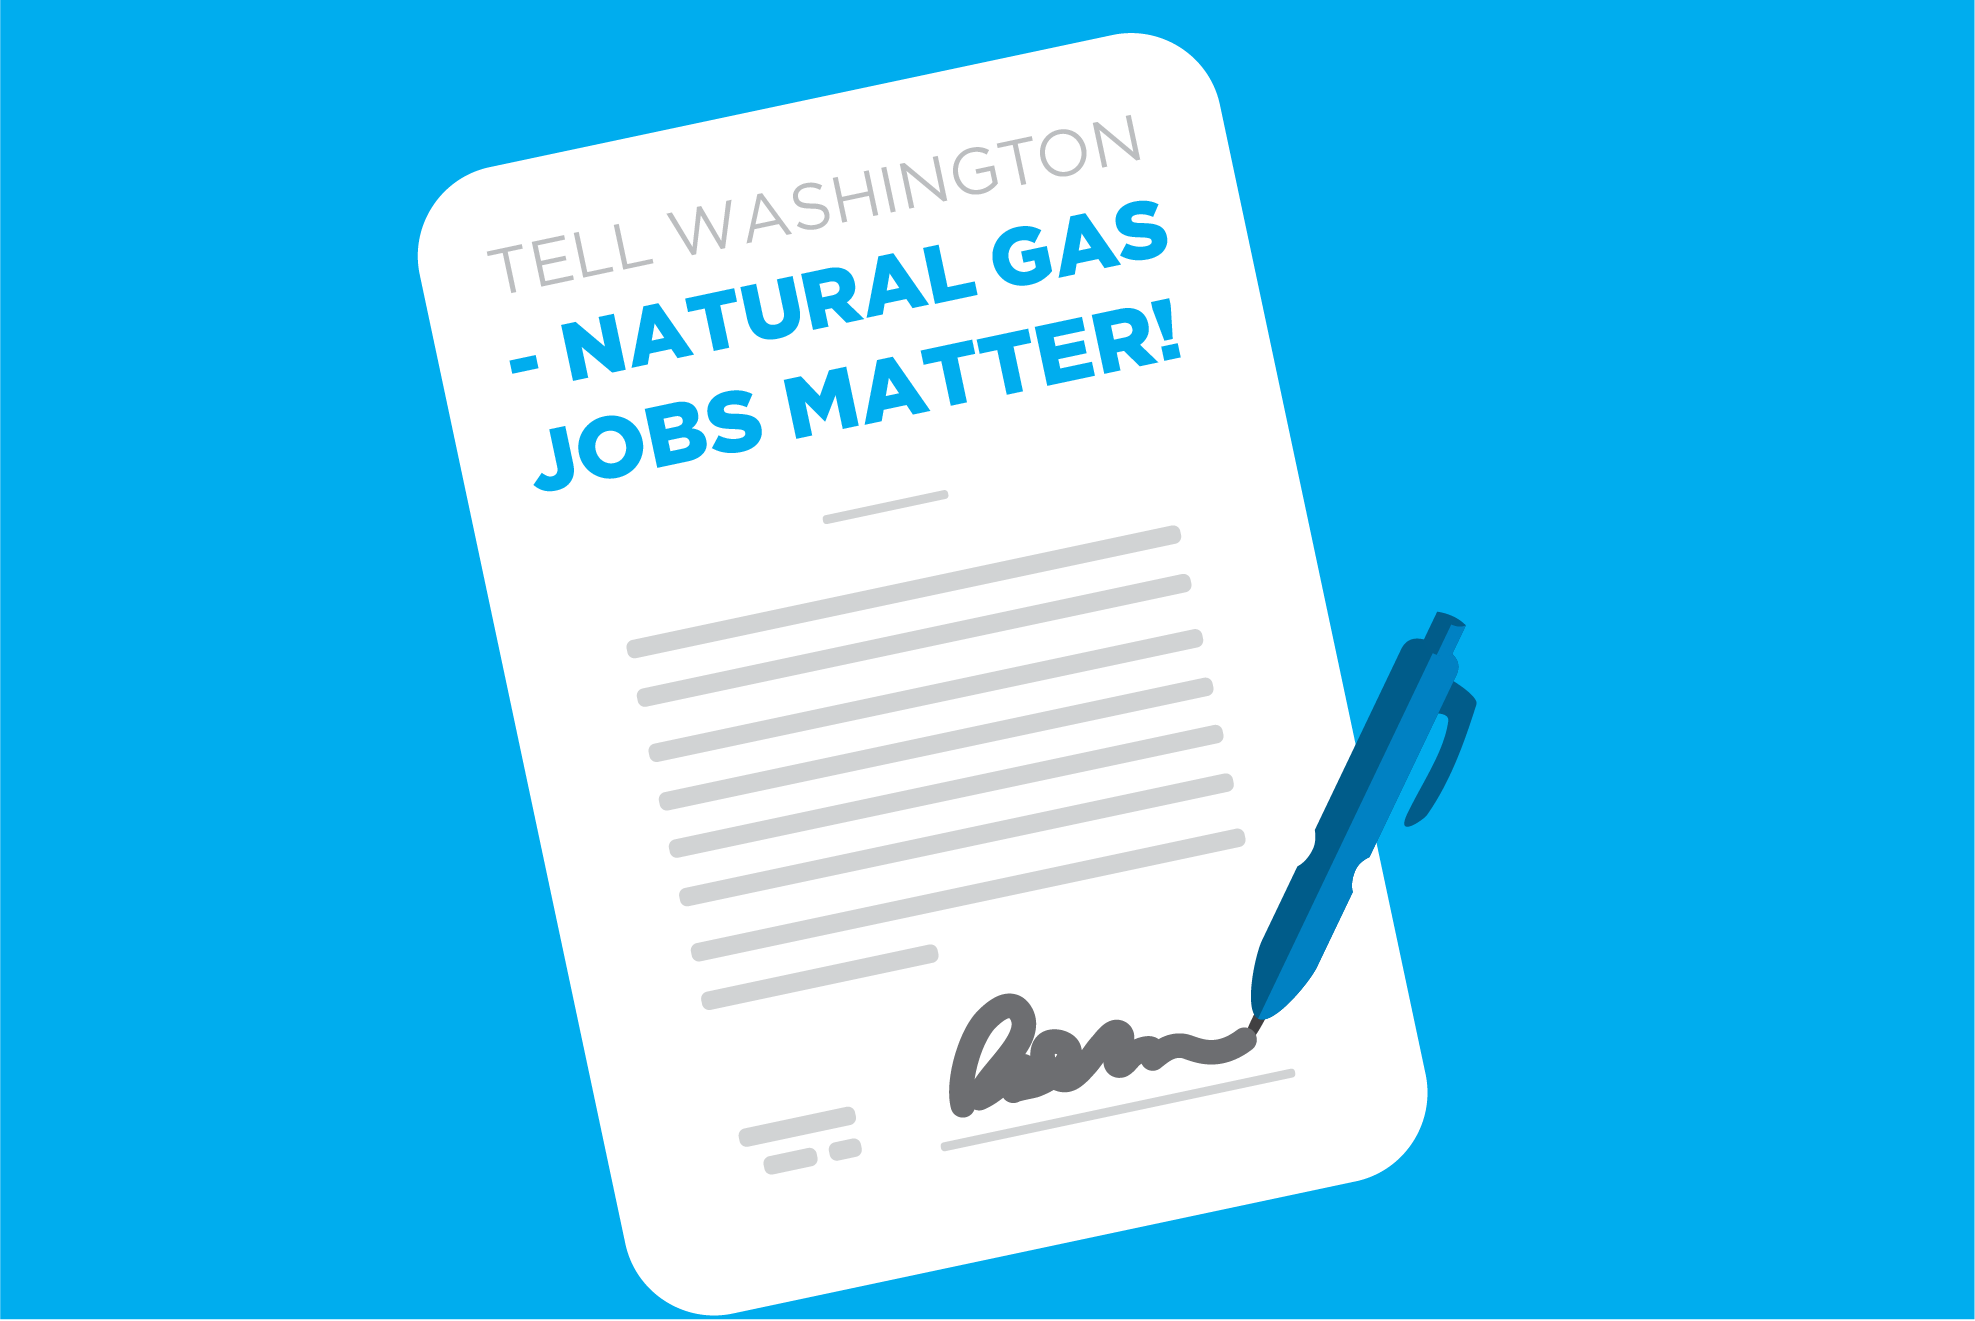 Tell Washington to Support Natural Gas Jobs